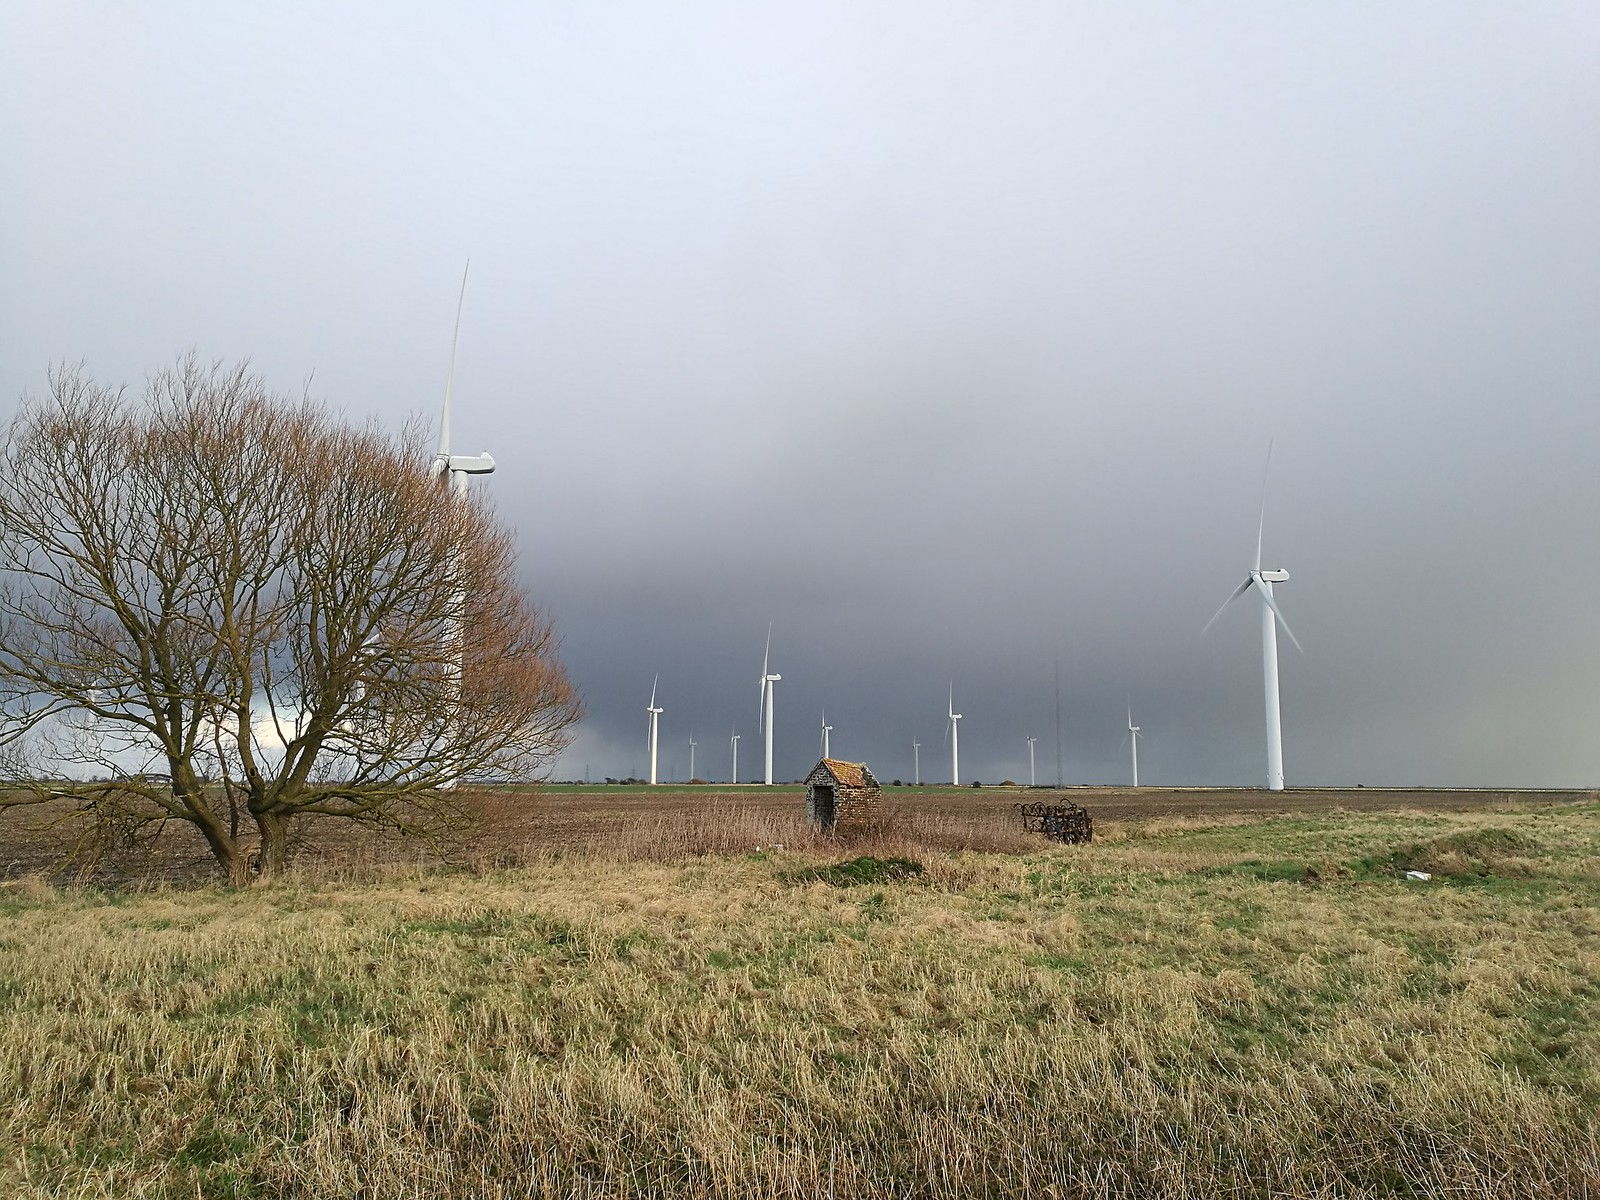 Mysterious building plus wind farm SWC 154 - Rye to Dungeness and Lydd-on-Sea or Lydd or Circular (Wind Farm Extension of Rye Ending) [taken by Emma P]